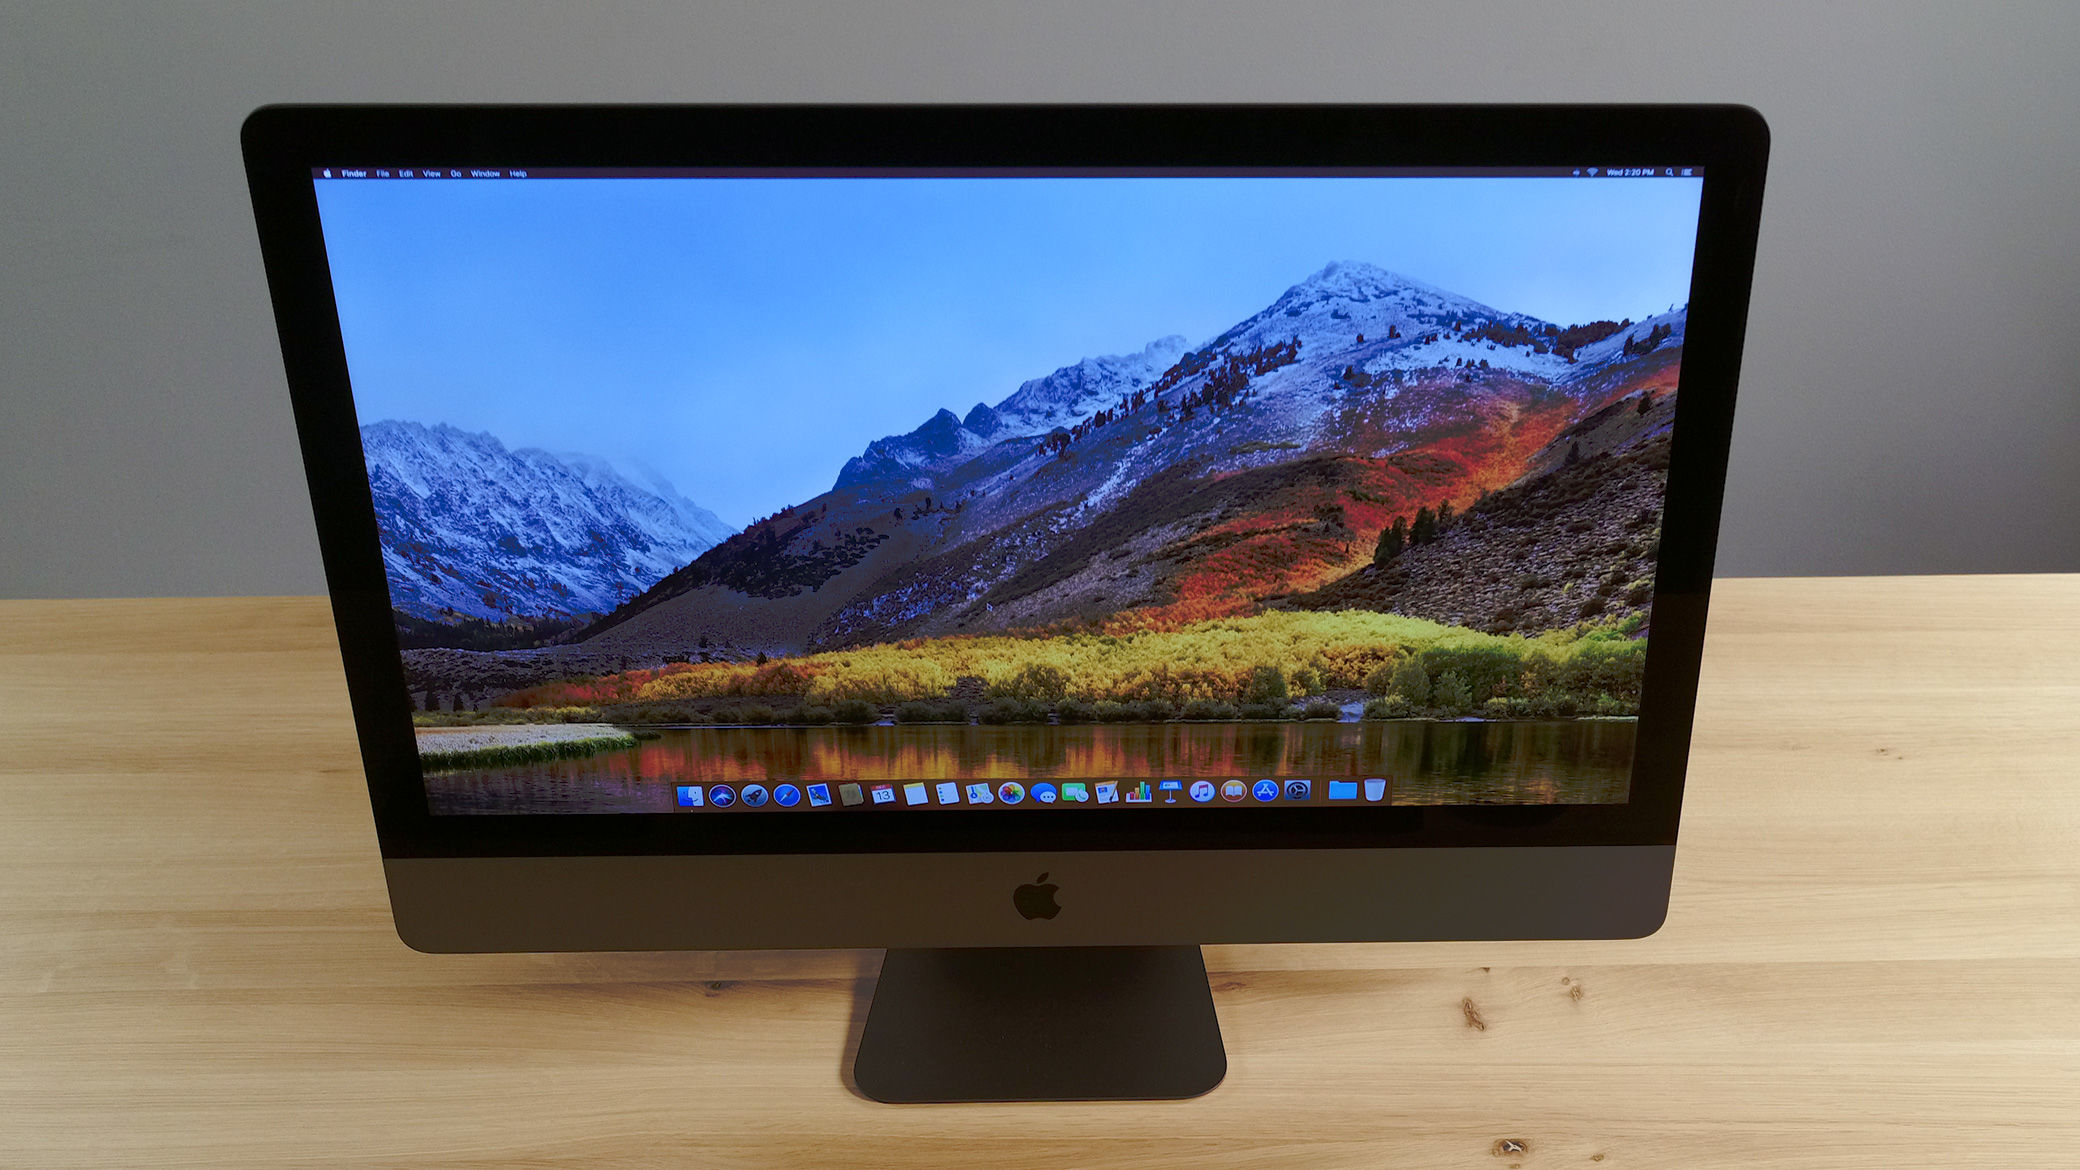 A new fully loaded iMac Pro costs as much as a auto